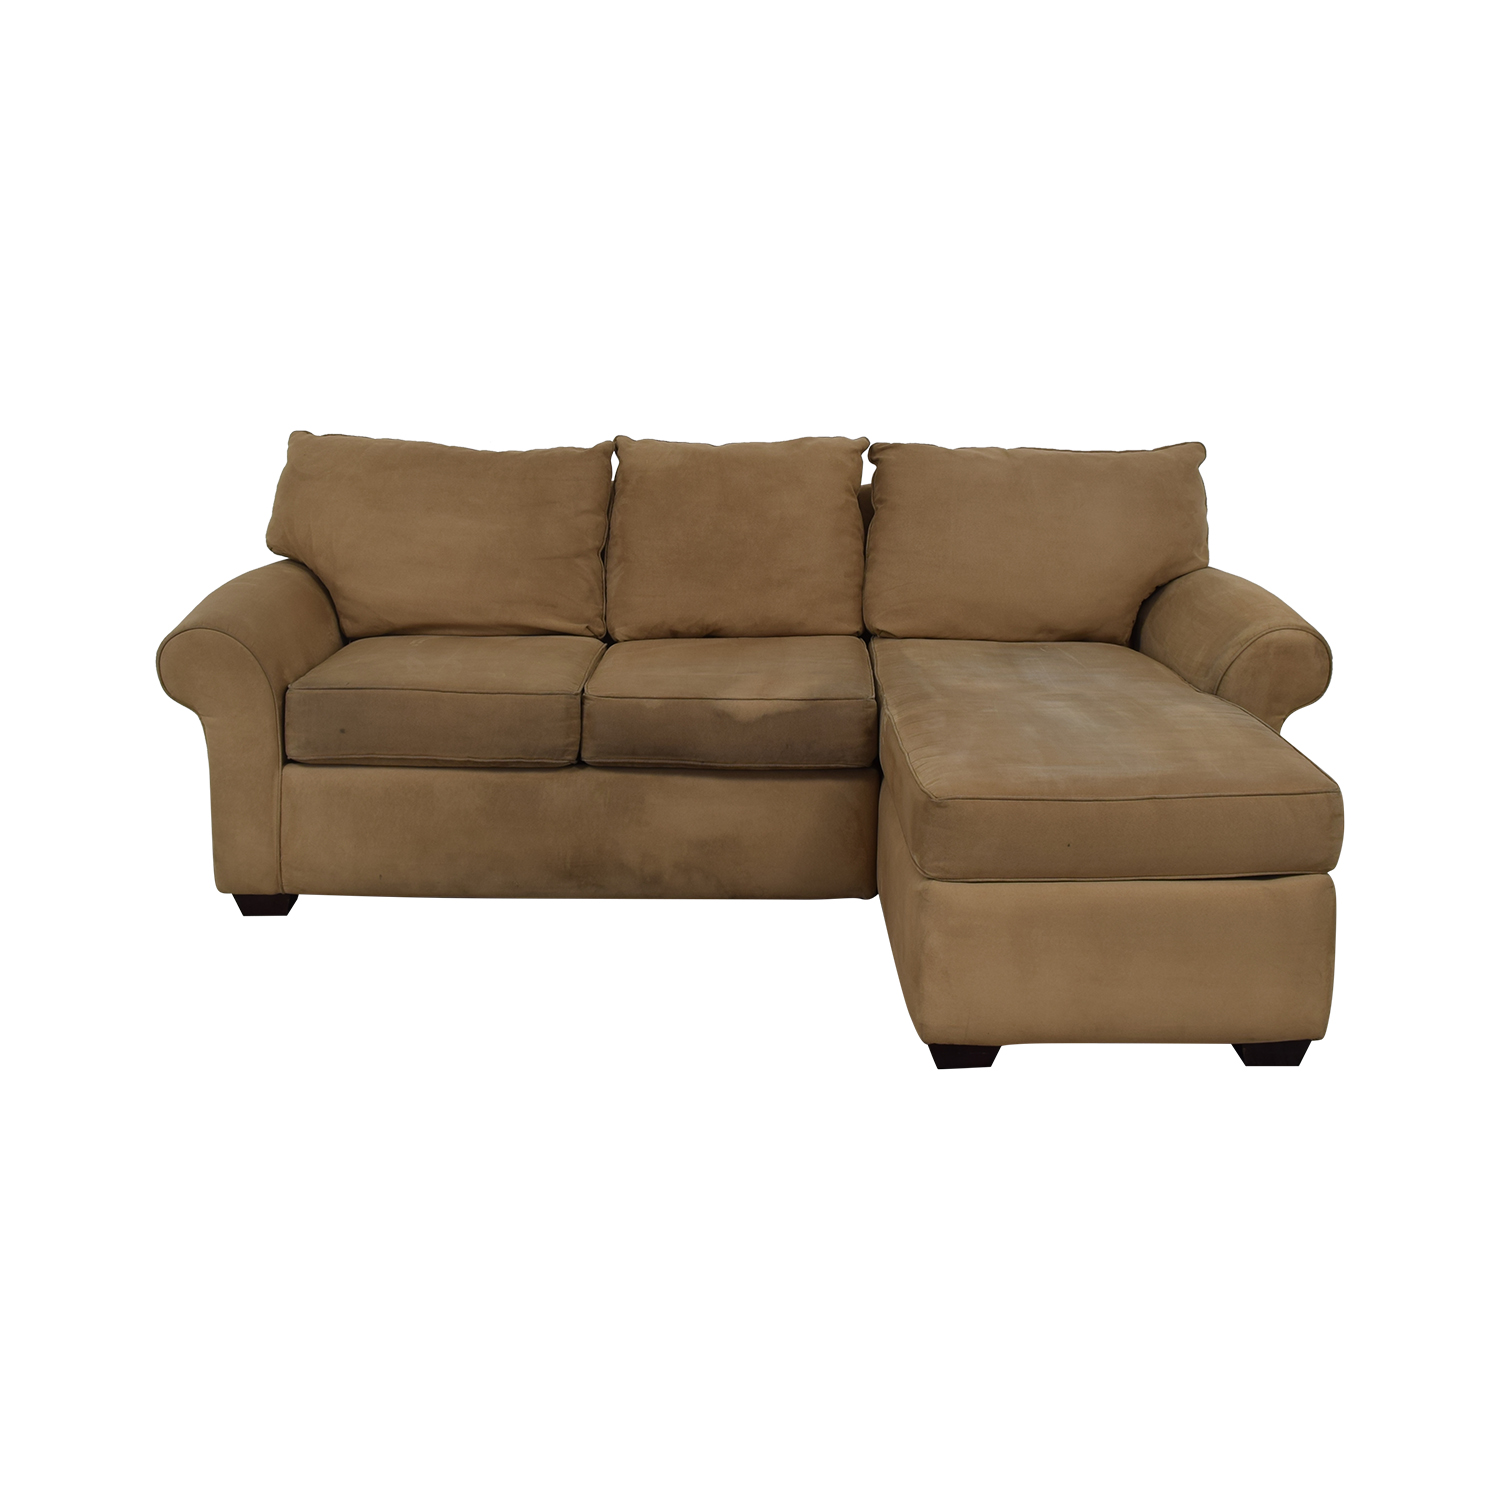 42% OFF - Sectional Right Side Chaise Sofa / Sofas